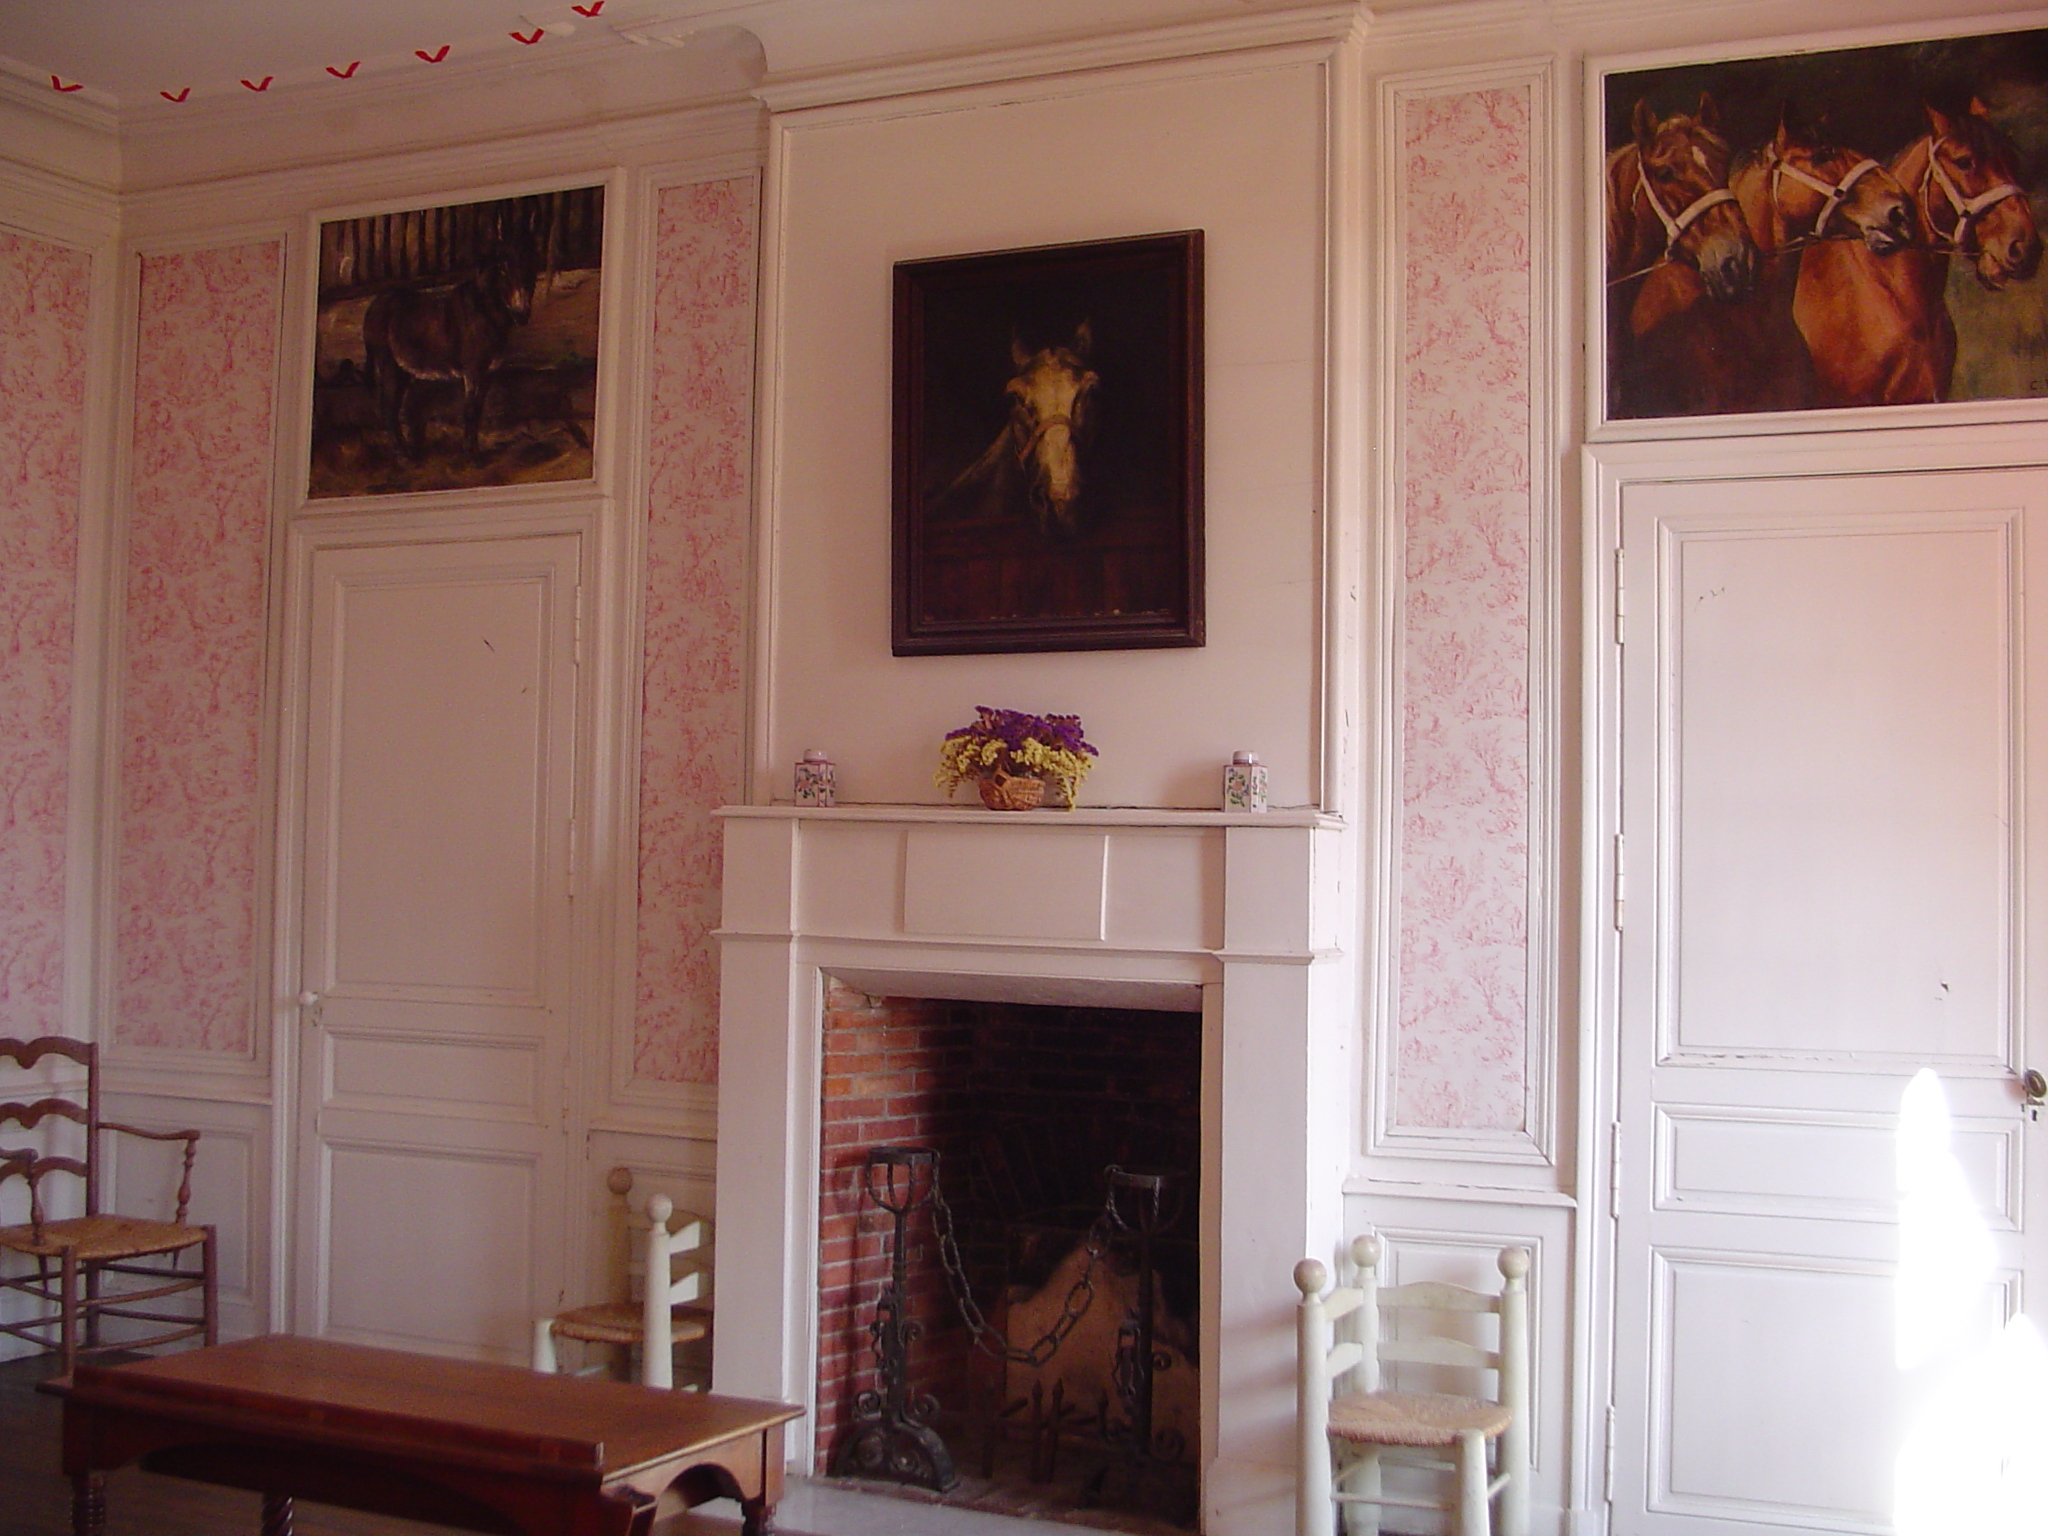 Chambre rouge fireplace.jpg